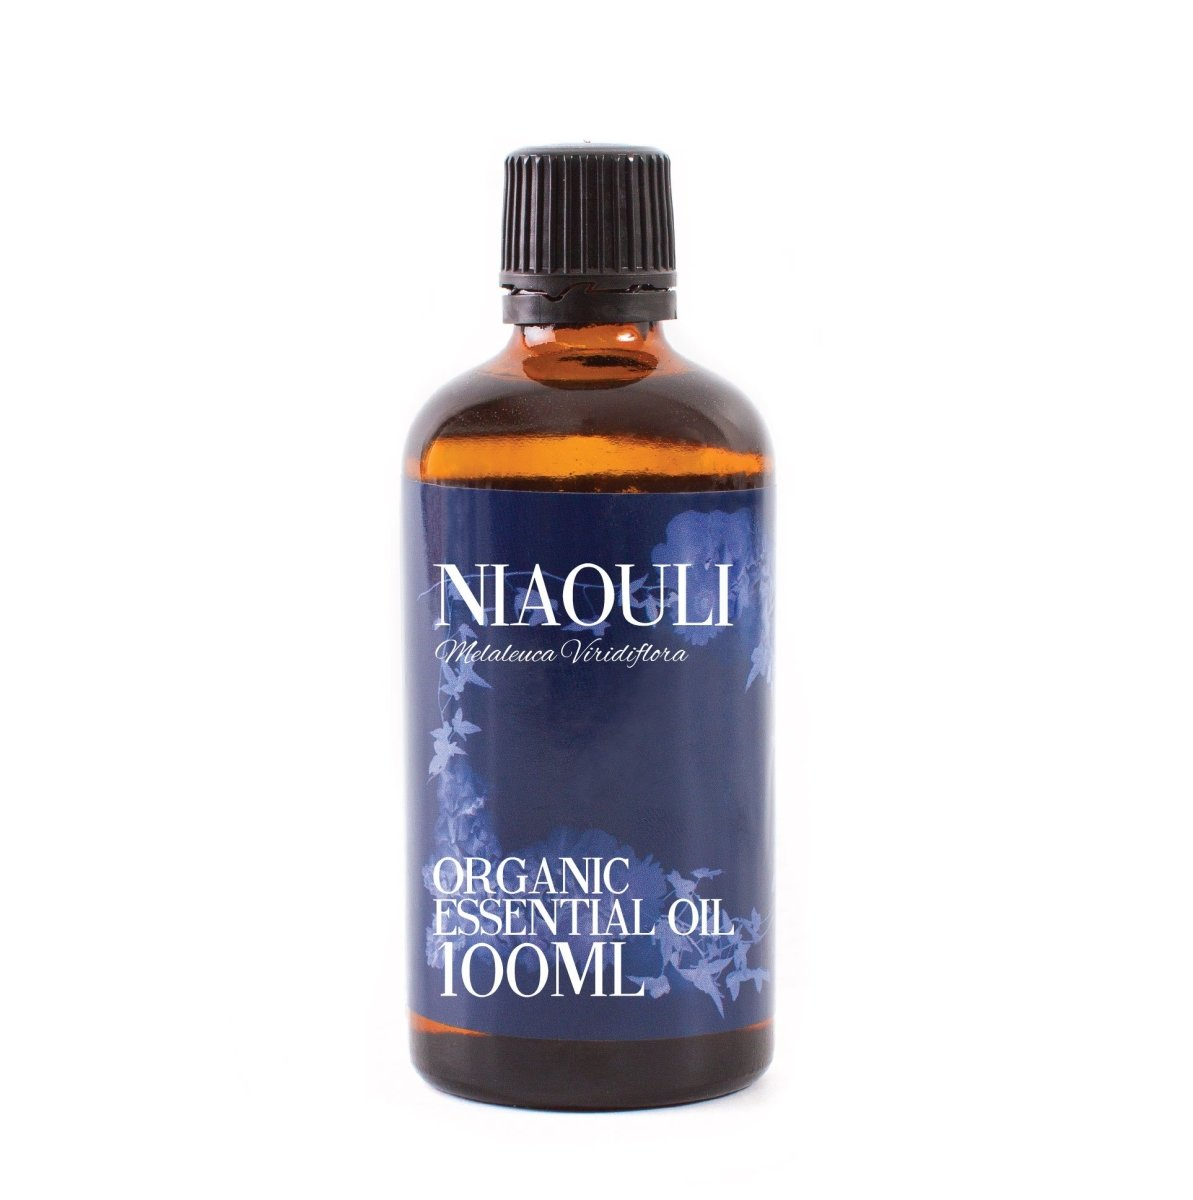 Niaouli Organic Essential Oil - Mystic Moments UK